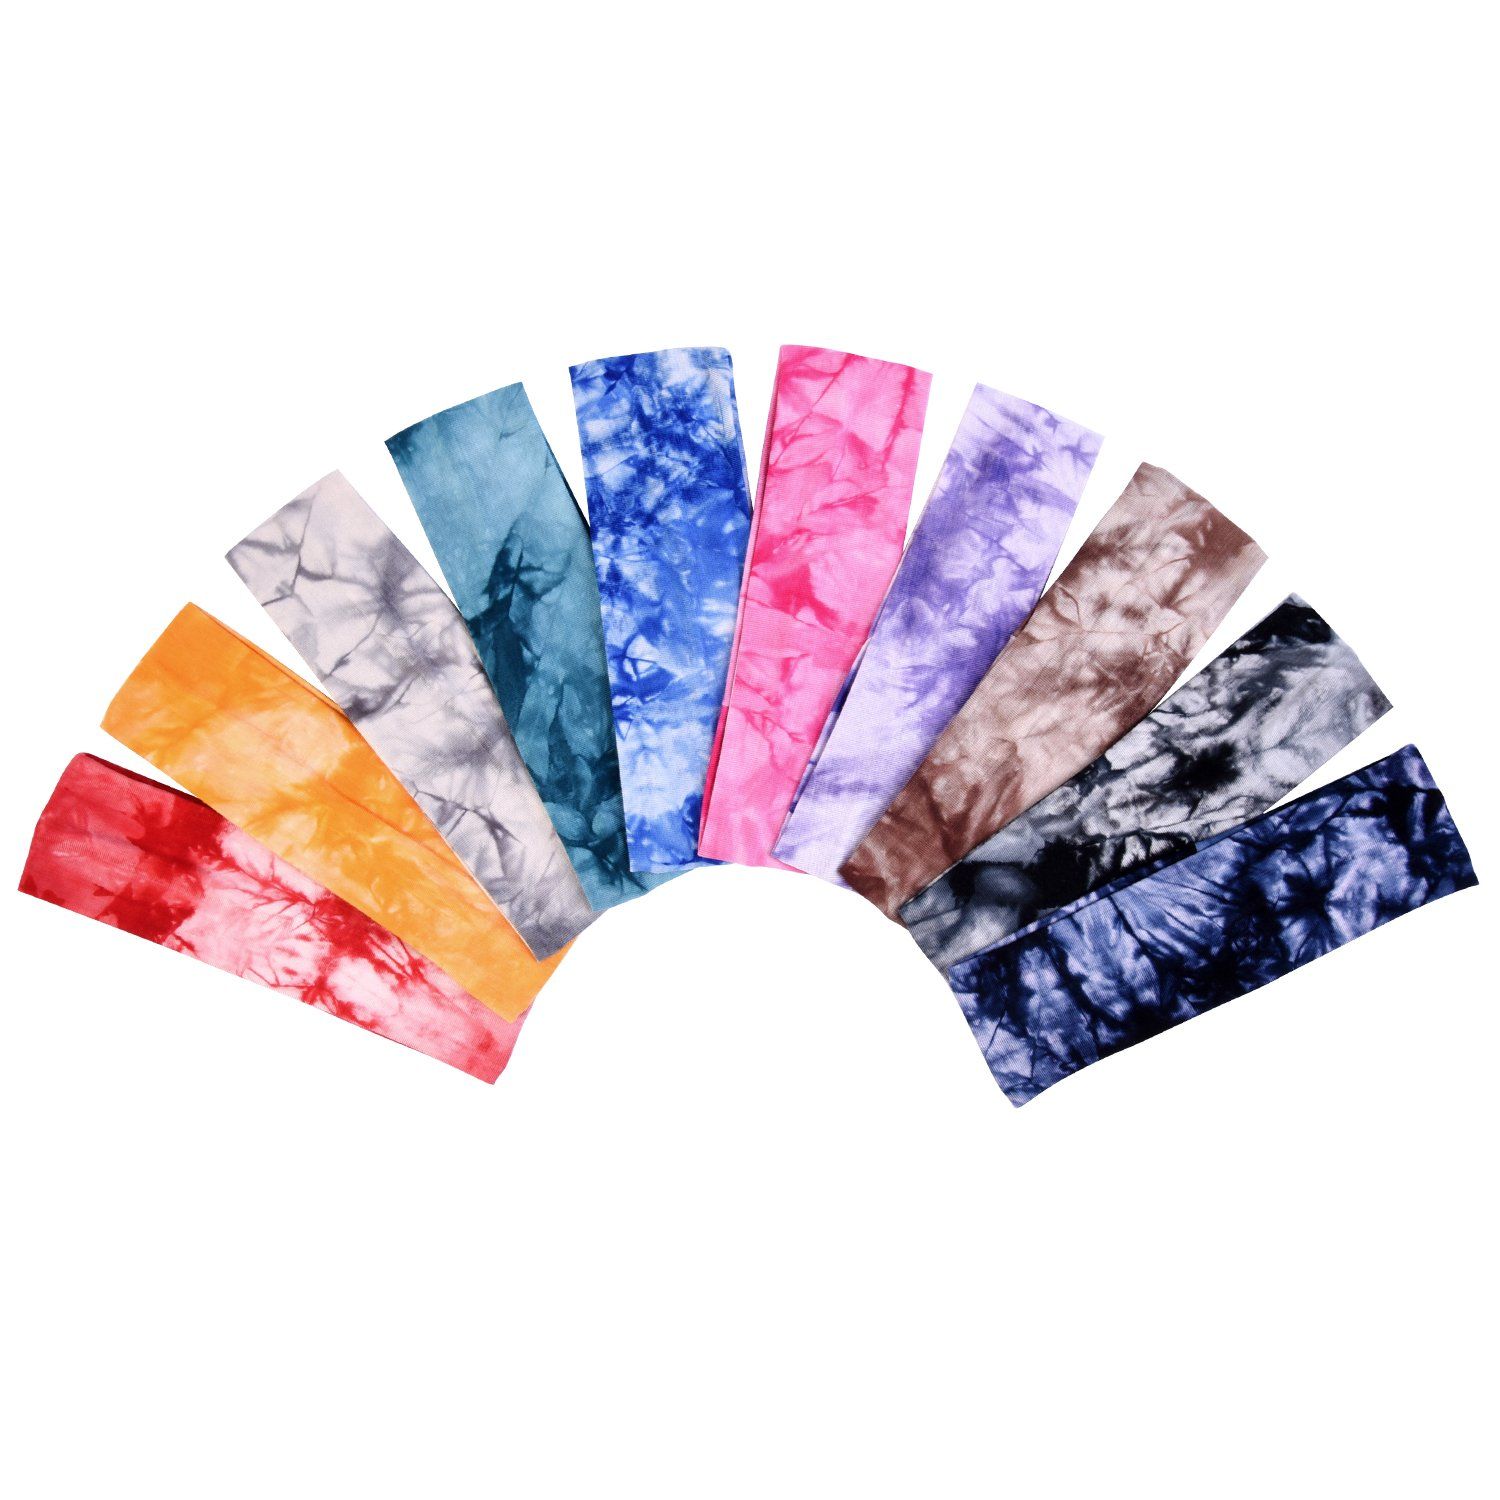 Tie Dye Headbands Cotton Stretch Headbands Elastic Yoga Hairband for Teens Girls Women Adults, Assorted Colors, 10 Pieces (Color Set 1) by eBoot